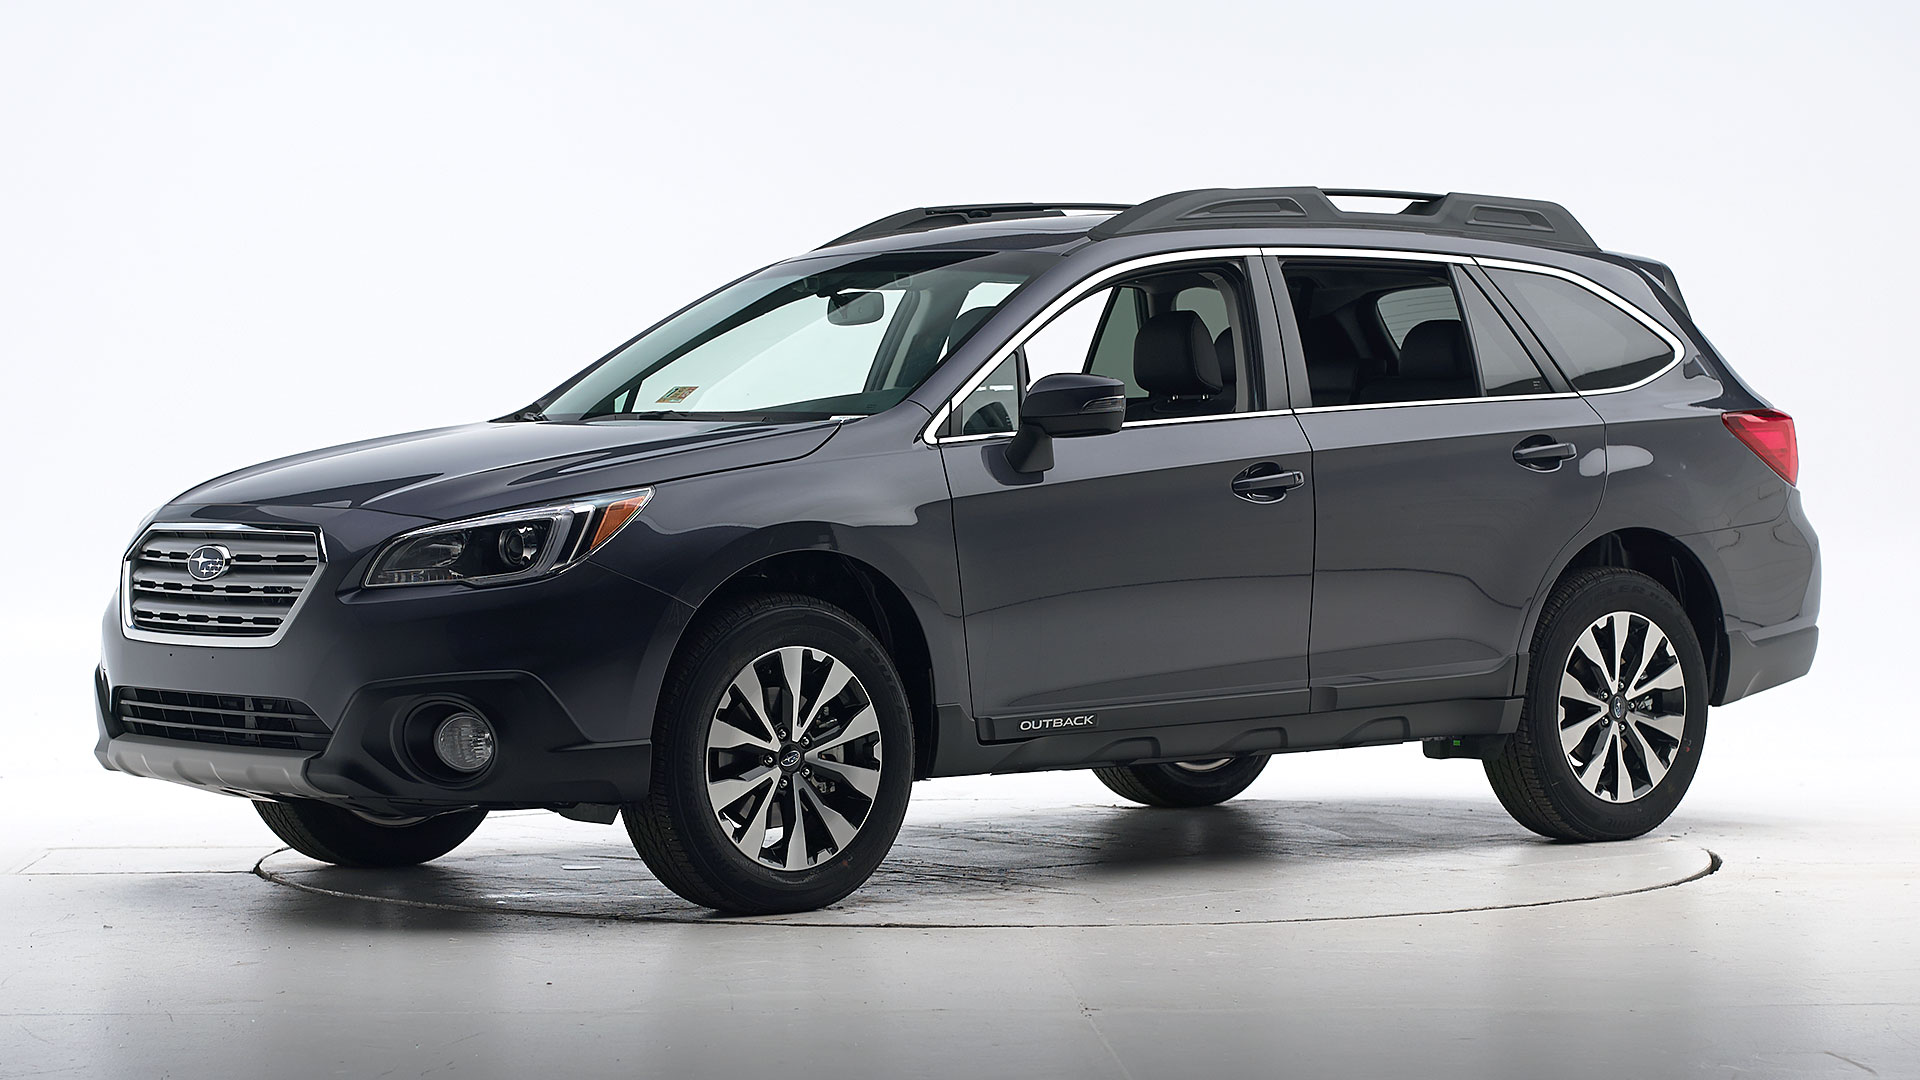 2015 Subaru Outback 4-door wagon